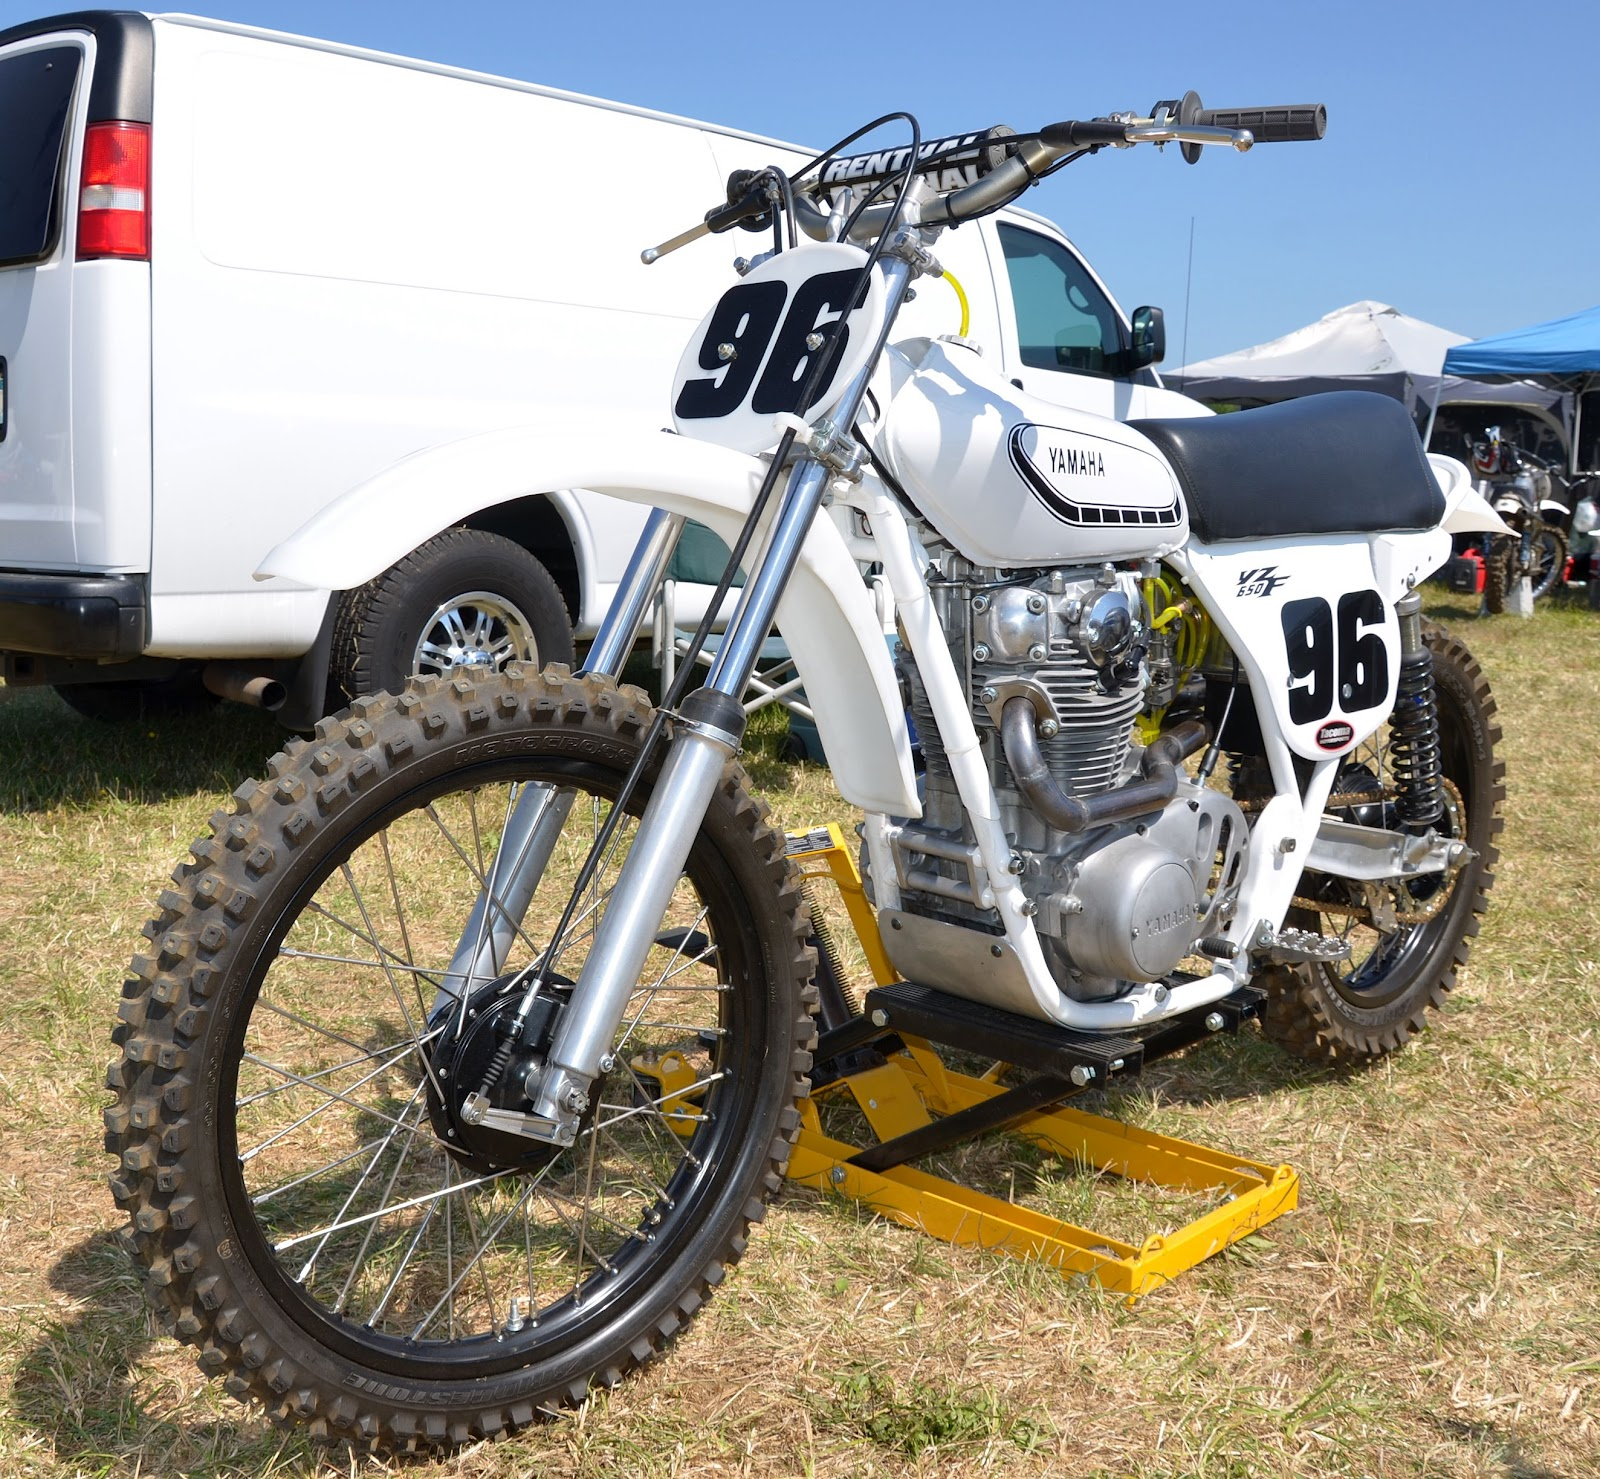 Even though this was a vintage motocross event, a few trials bikes around,  since they held the AHRMA vintage trials event the day before.